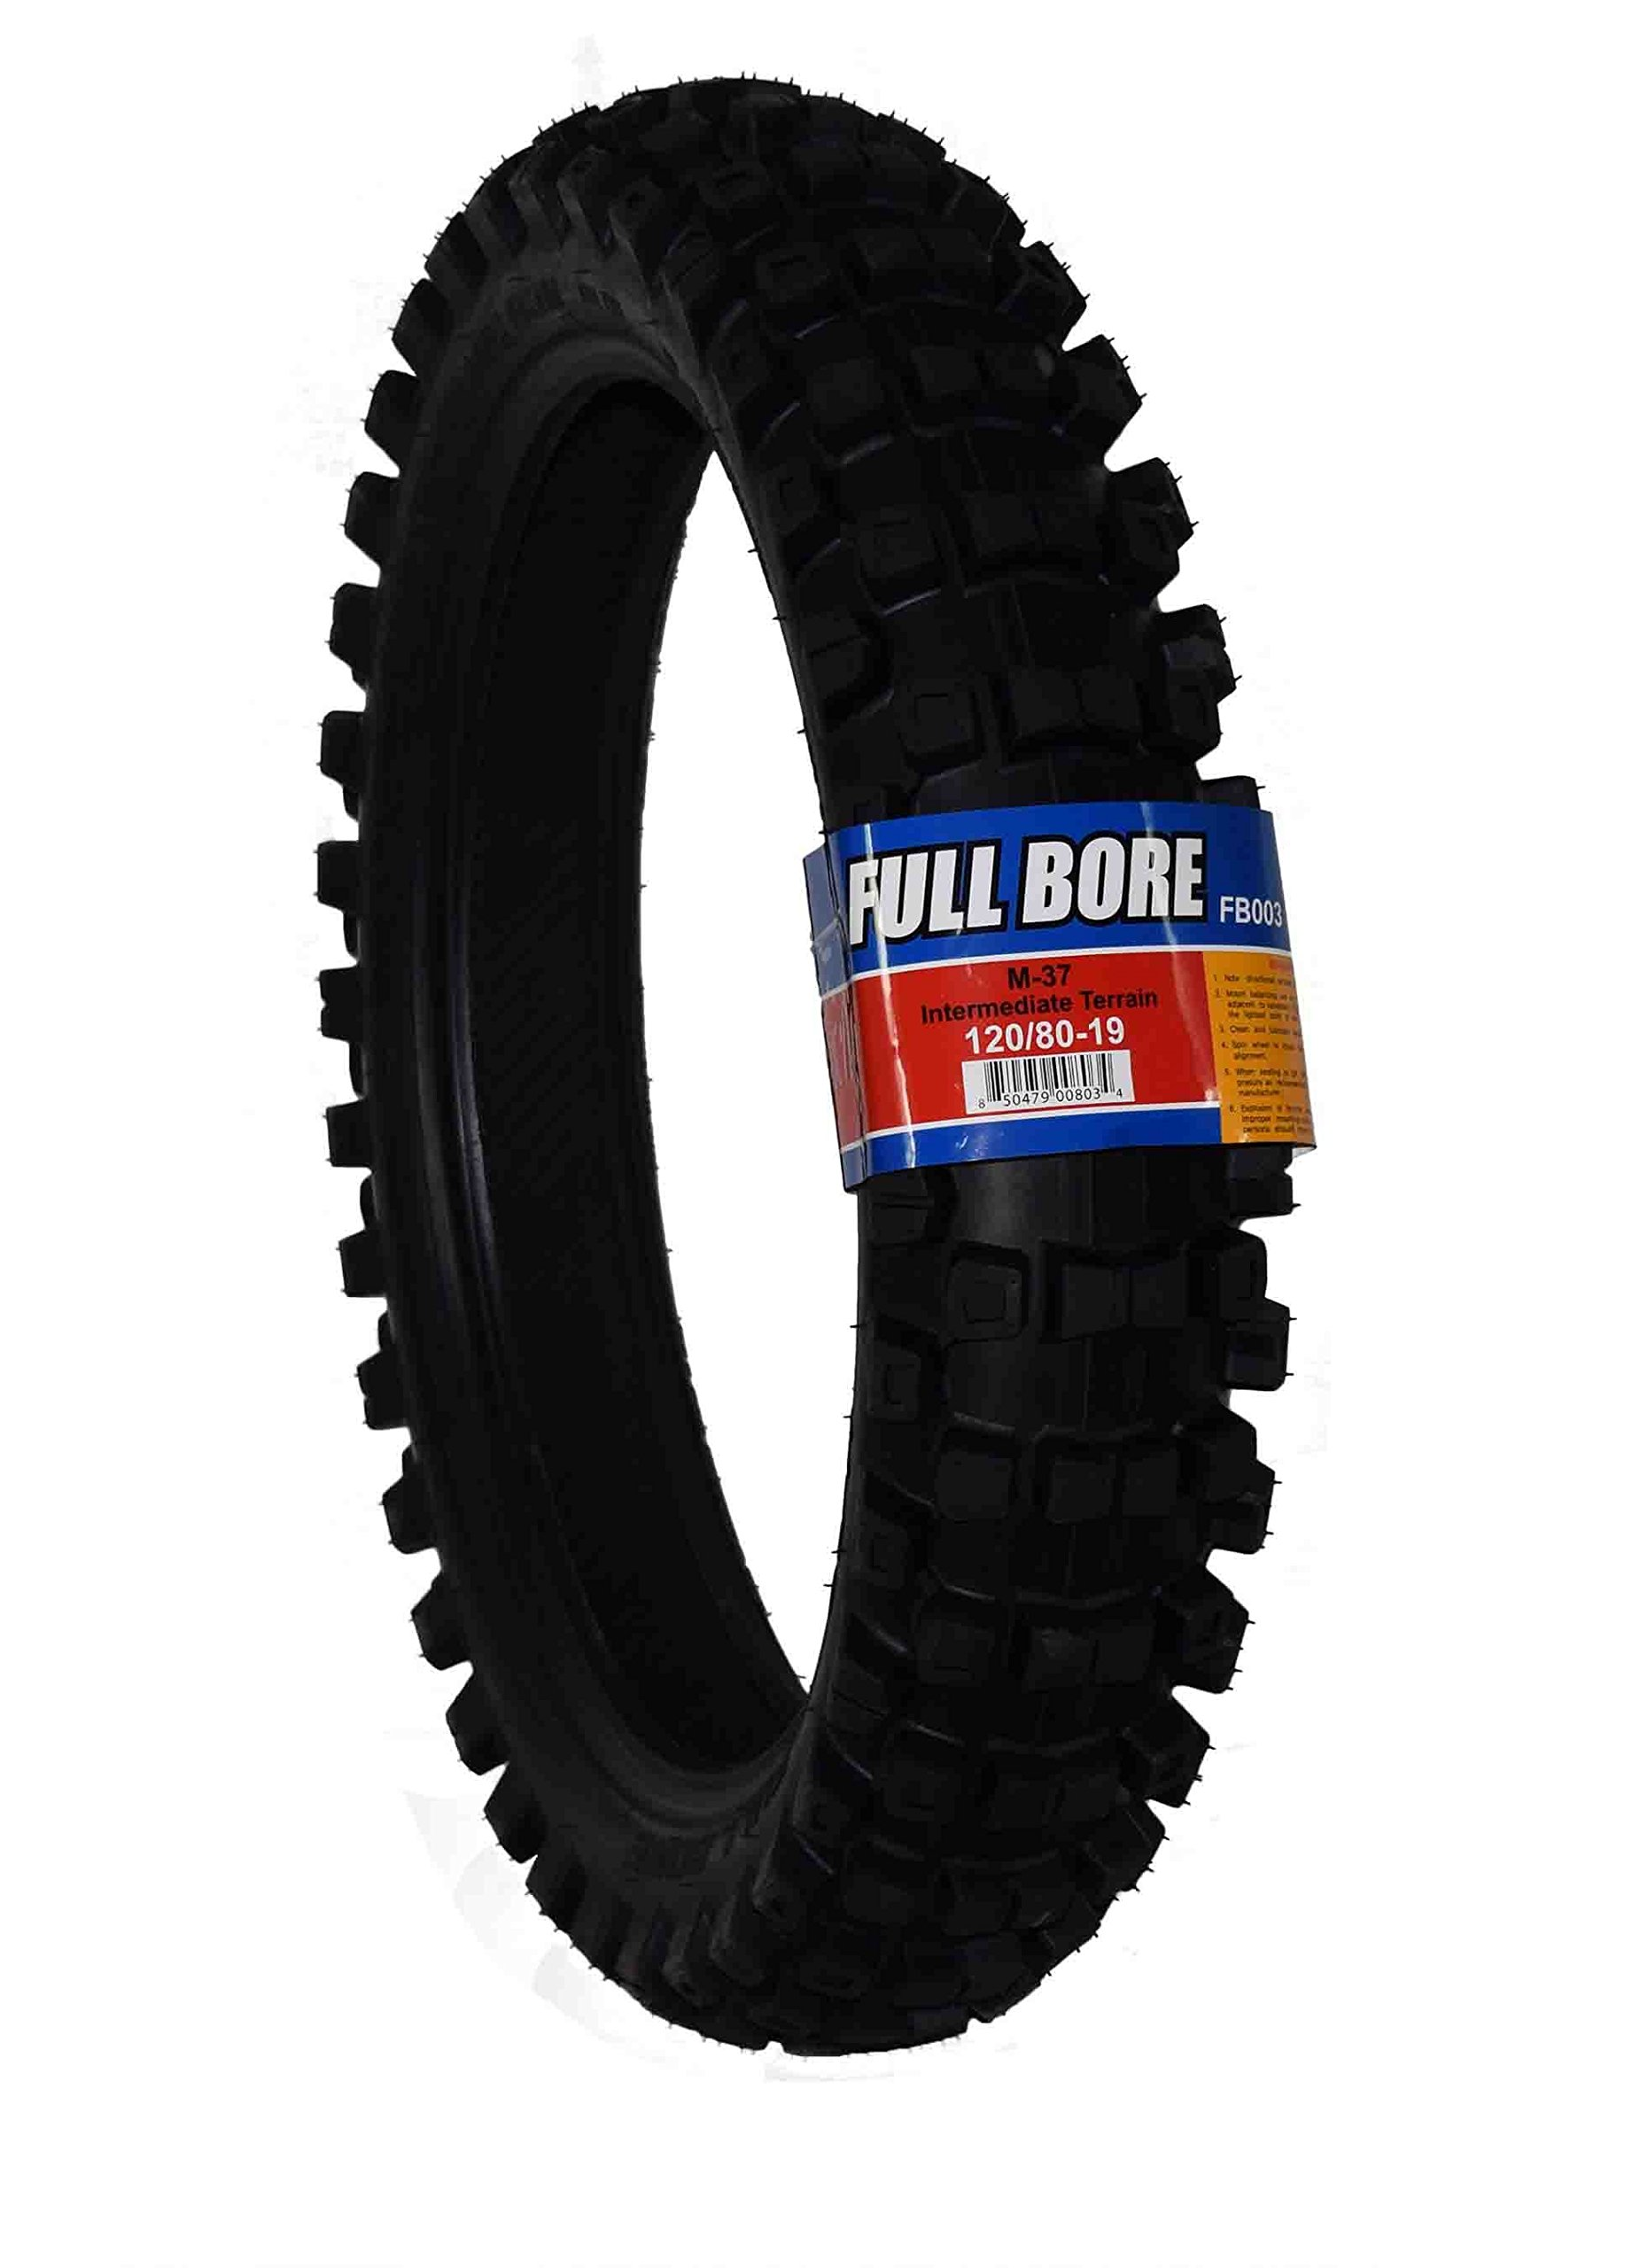 Full Bore Intermediate Terrain Dirt Bike Tire (120/80-19)